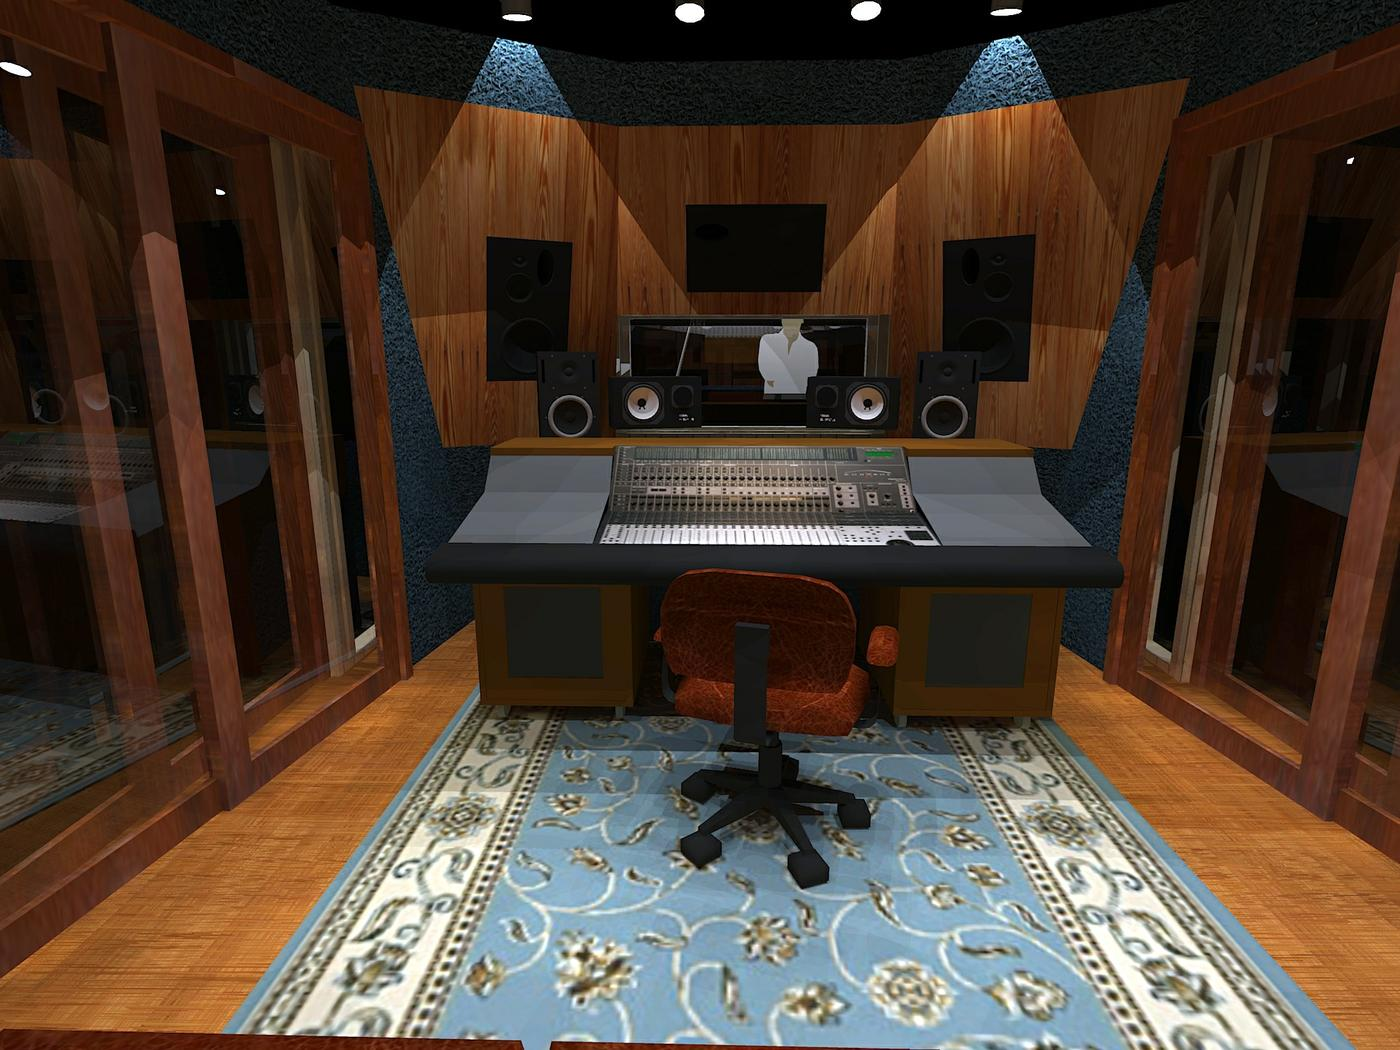 1000 images about recording studio design on pinterest casablanca music rooms and multimedia